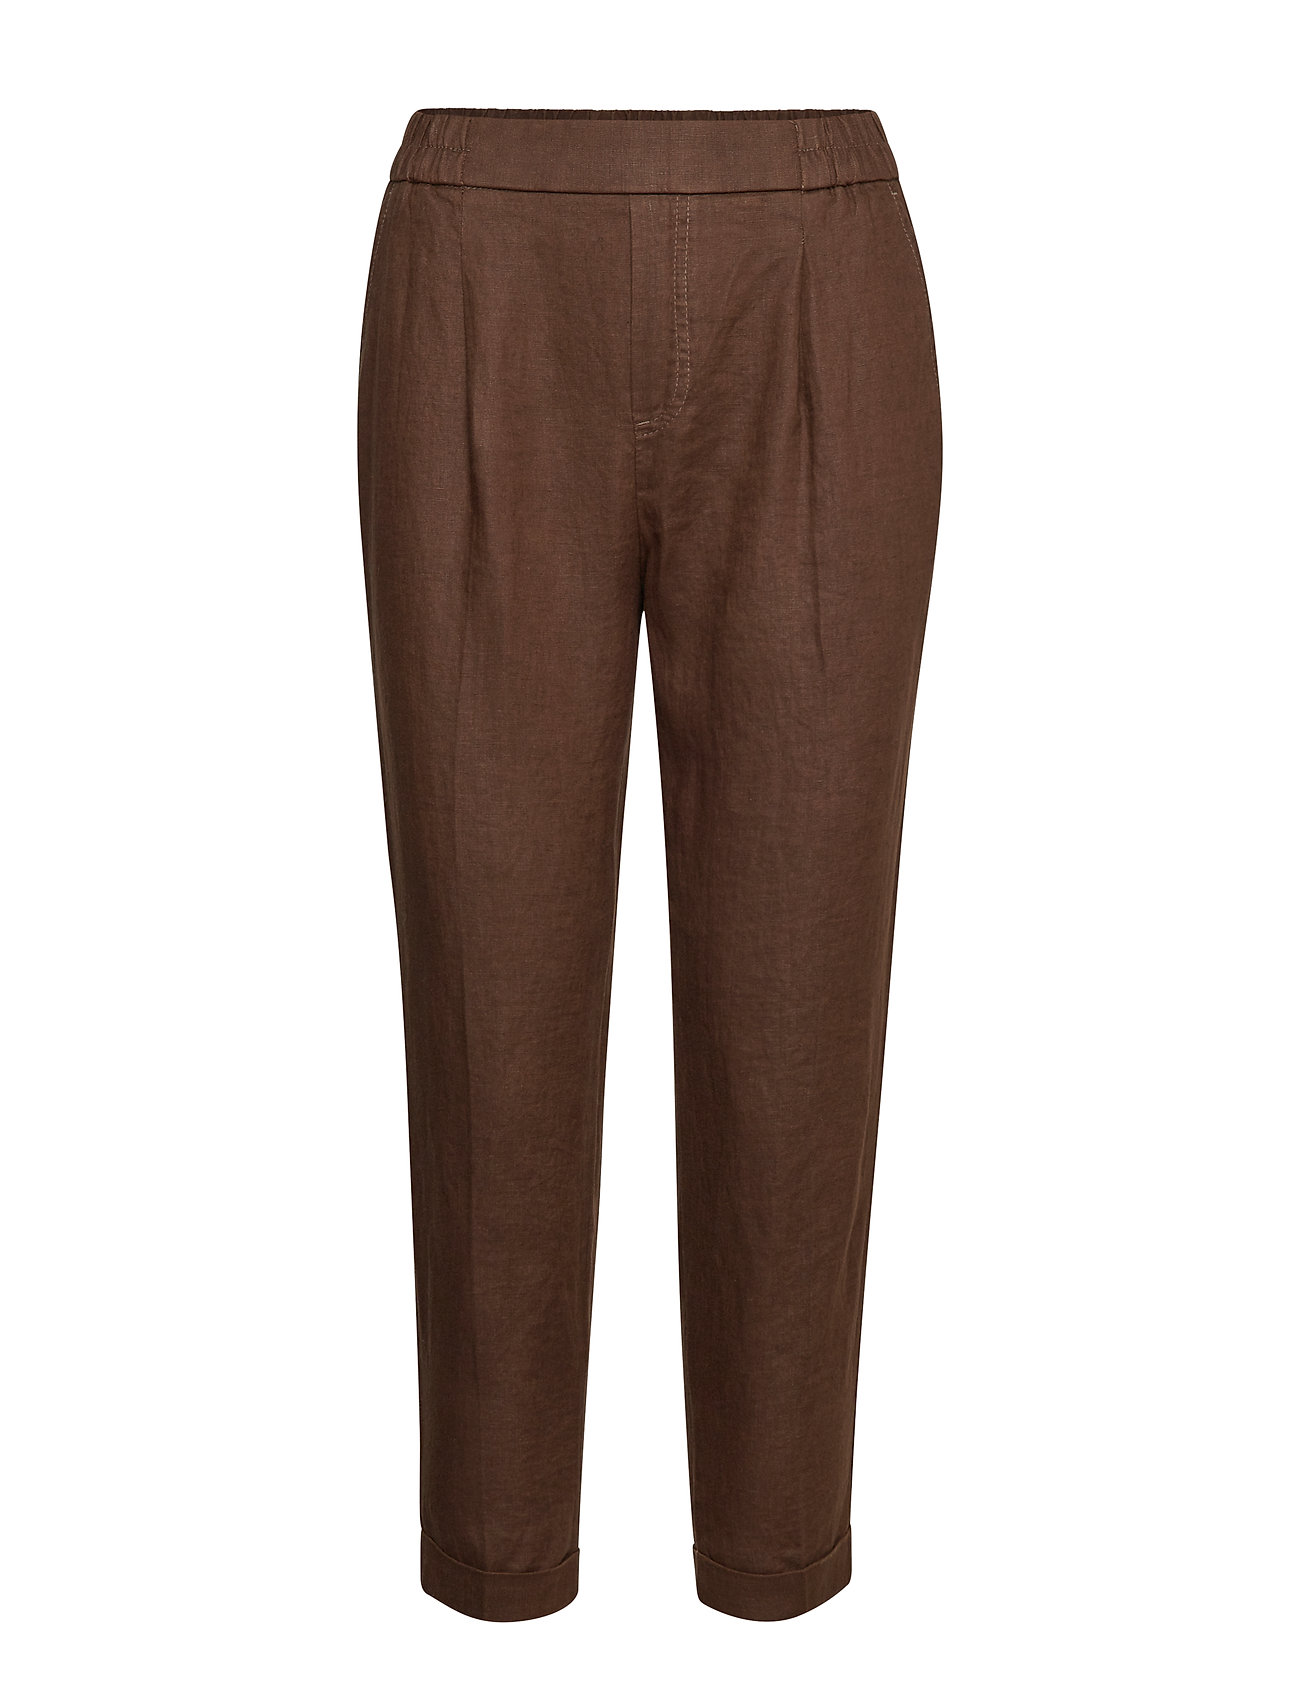 Trousers Casual Bukser Brun UNITED COLORS OF BENETTON